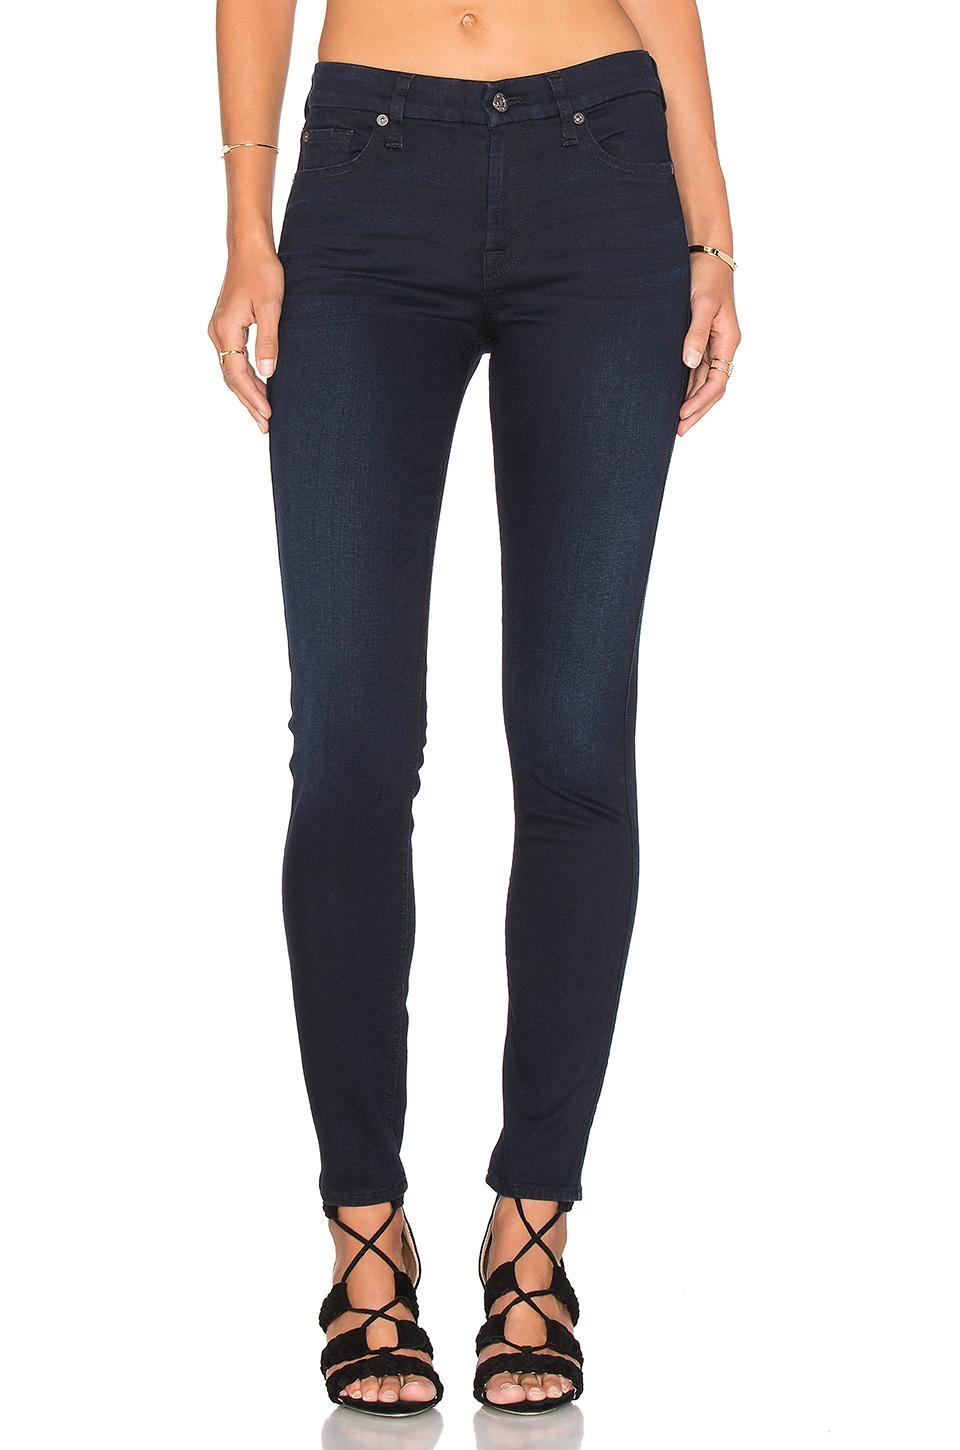 7 For All Mankind The Squiggle Tonal Skinny In Blue Black River Tham